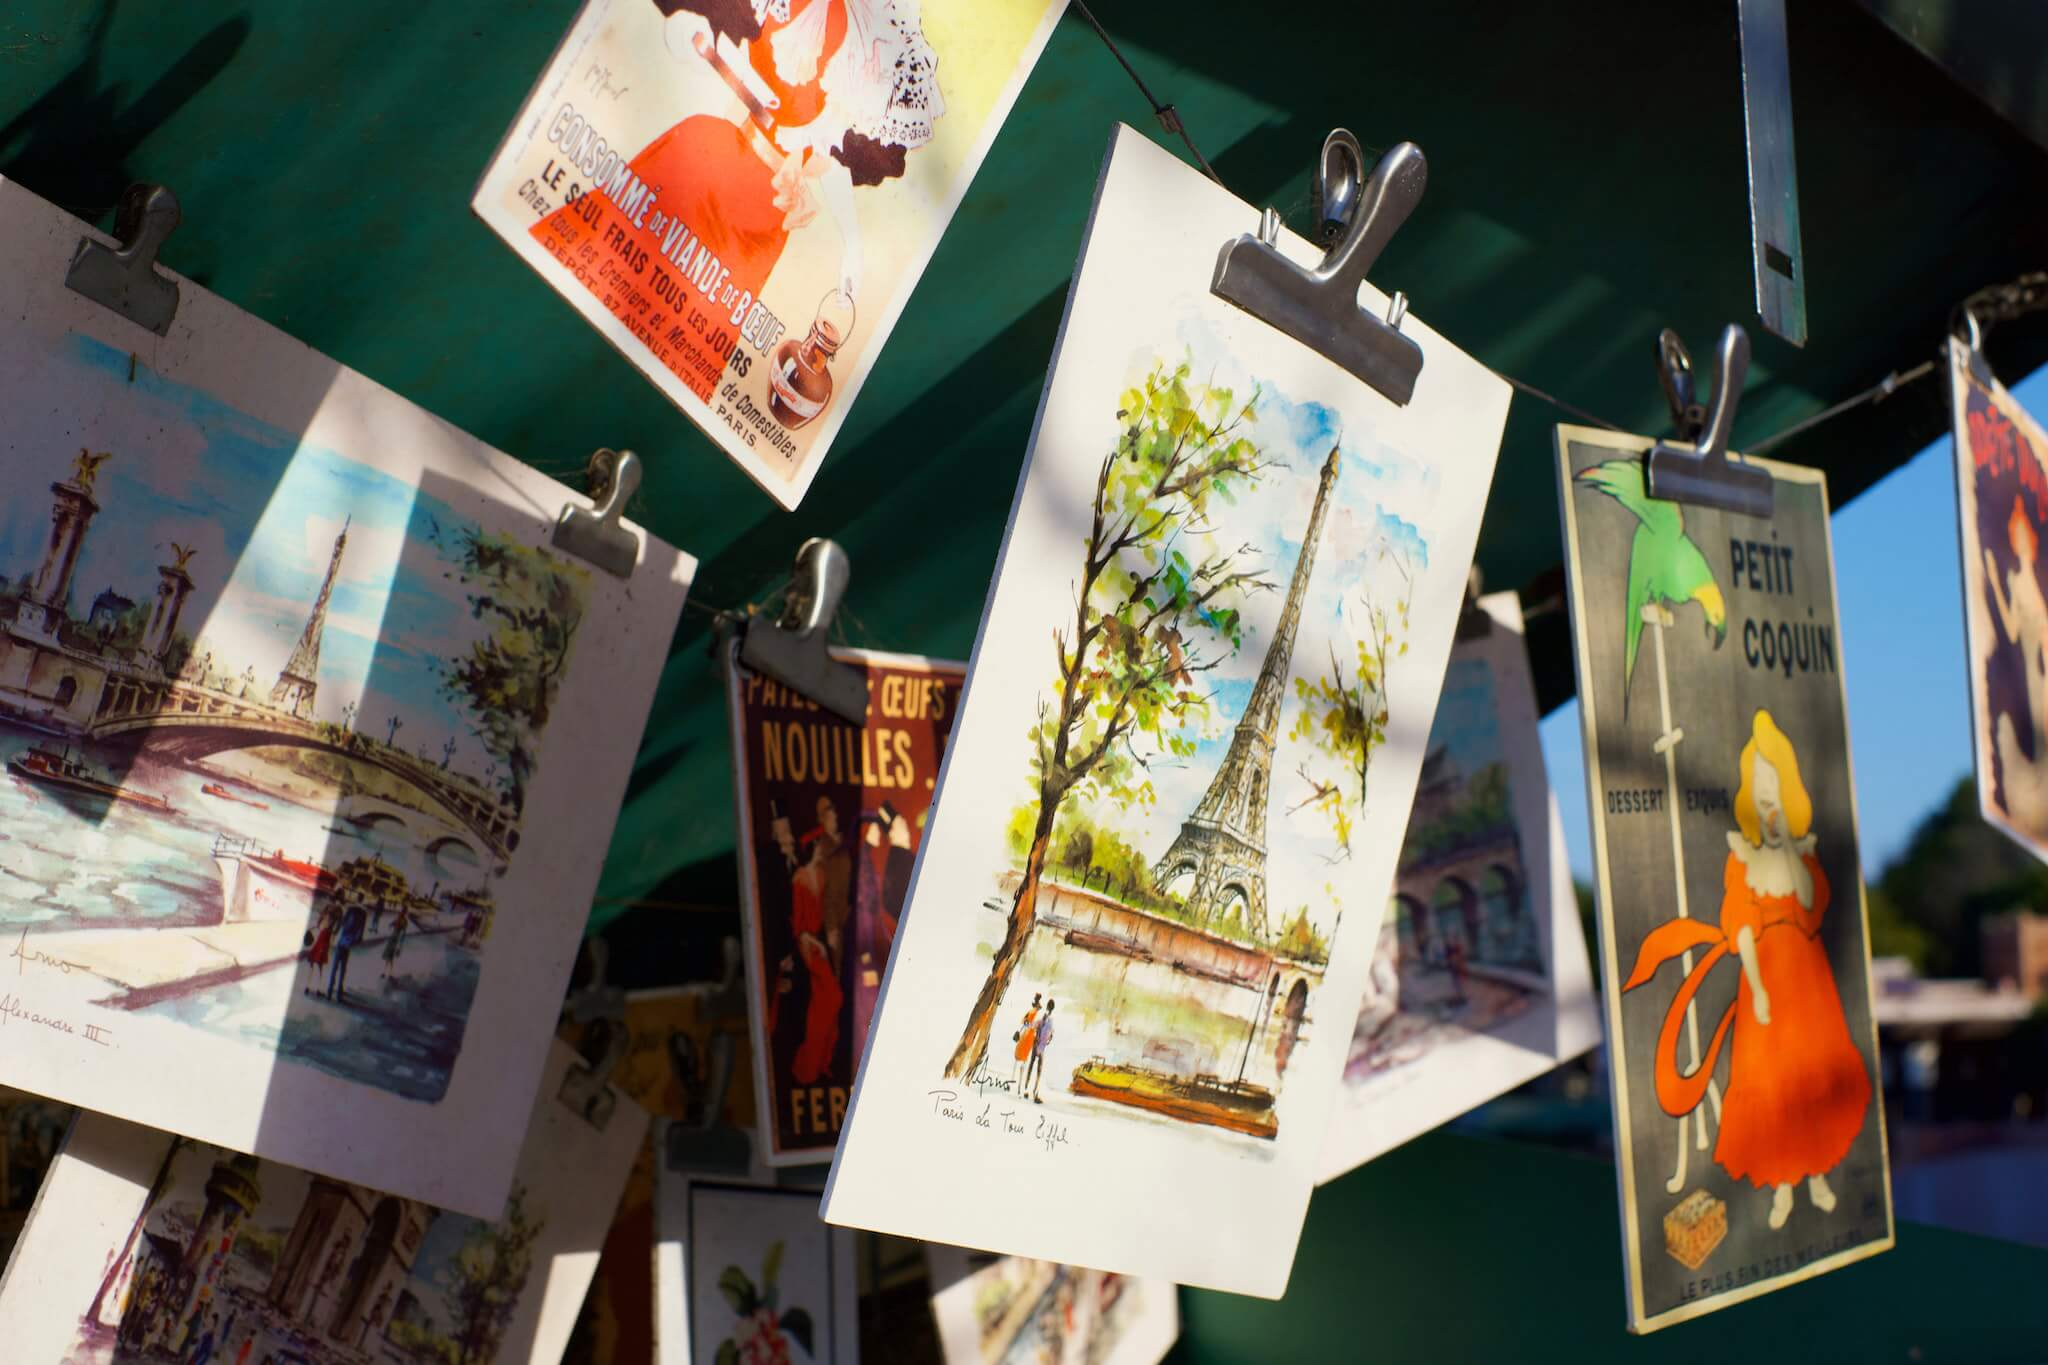 Beautiful hand-painted street art hangs from a vendor's booth along the Seine in Paris.